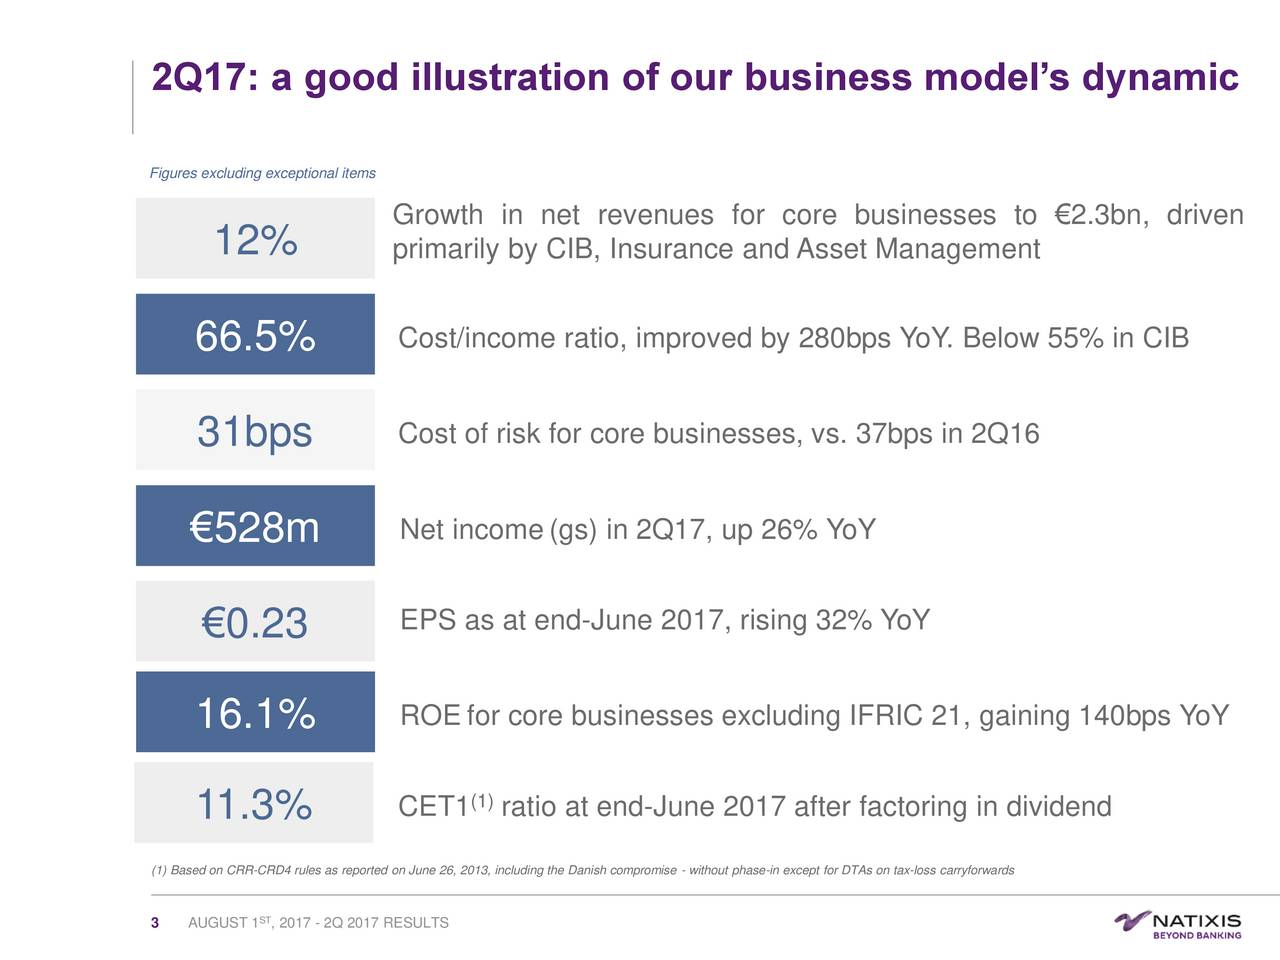 Figures excluding exceptional items Growth in net revenues for core businesses to 2.3bn, driven 12% primarily by CIB, Insurance and Asset Management 66.5% Cost/income ratio, improved by 280bps YoY. Below 55% in CIB 31bps Cost of risk for core businesses, vs. 37bps in 2Q16 528m Net income(gs) in 2Q17, up 26% YoY 0.23 EPS as at end-June 2017, rising 32% YoY 16.1% ROE for core businesses excluding IFRIC 21, gaining 140bps YoY 11.3% CET1 (1ratio at end-June 2017 after factoring in dividend (1) Based on CRR-CRD4 rules as reported on June 26, 2013, including the Danish compromise - without phase-in except for DTAs on tax-loss carryforwards 3 AUGUST 1 , 2017 - 2Q 2017 RESULTS